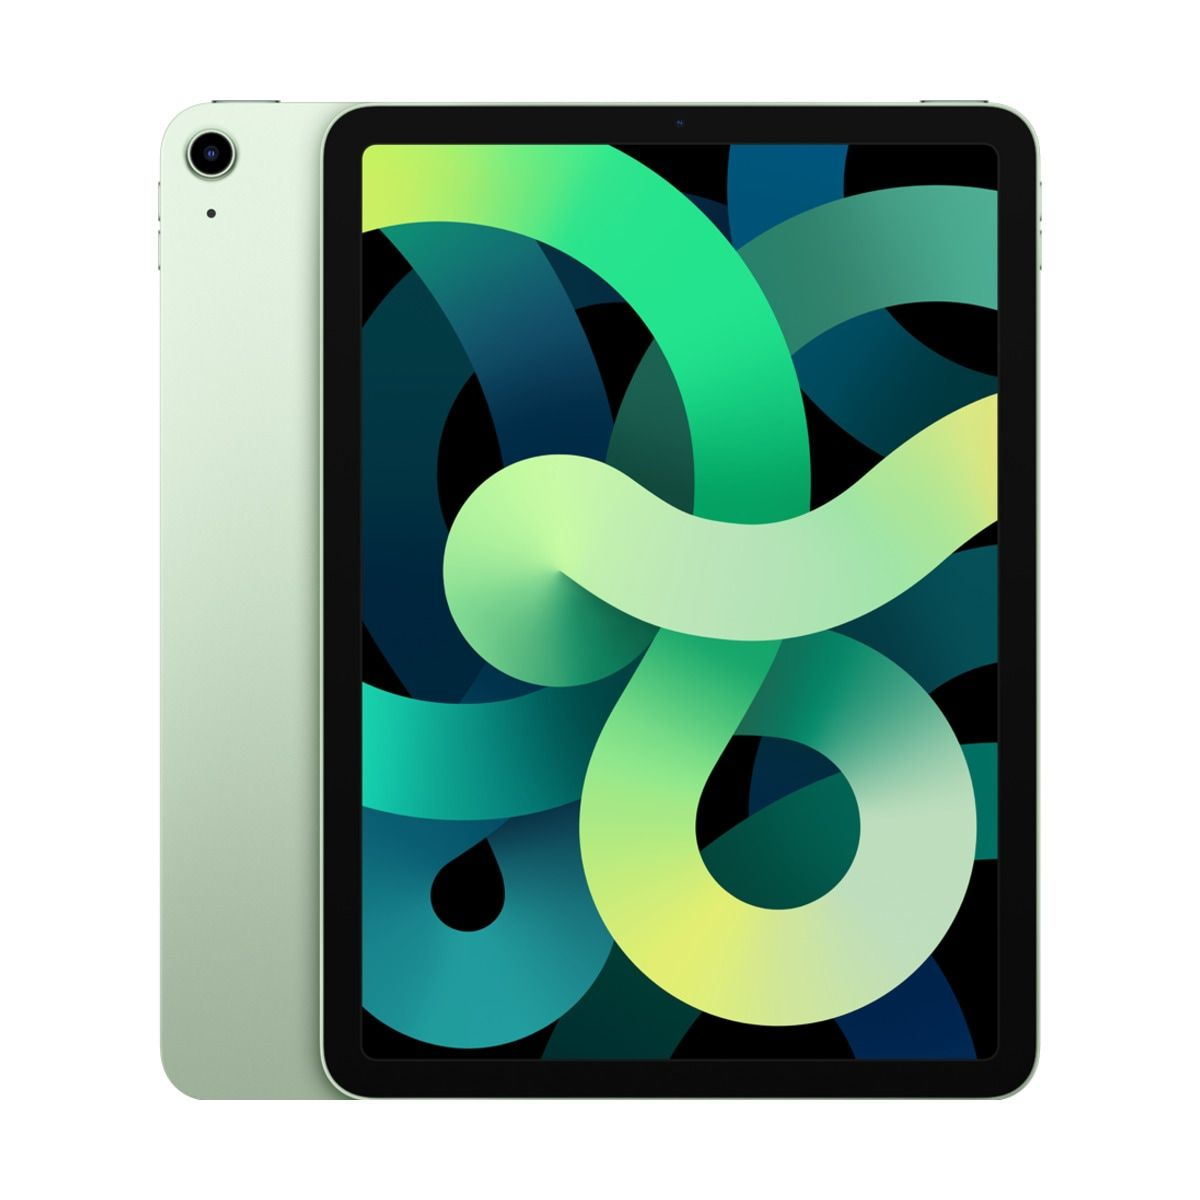 iPad Air Wi-Fi+Cell 256GB - Green